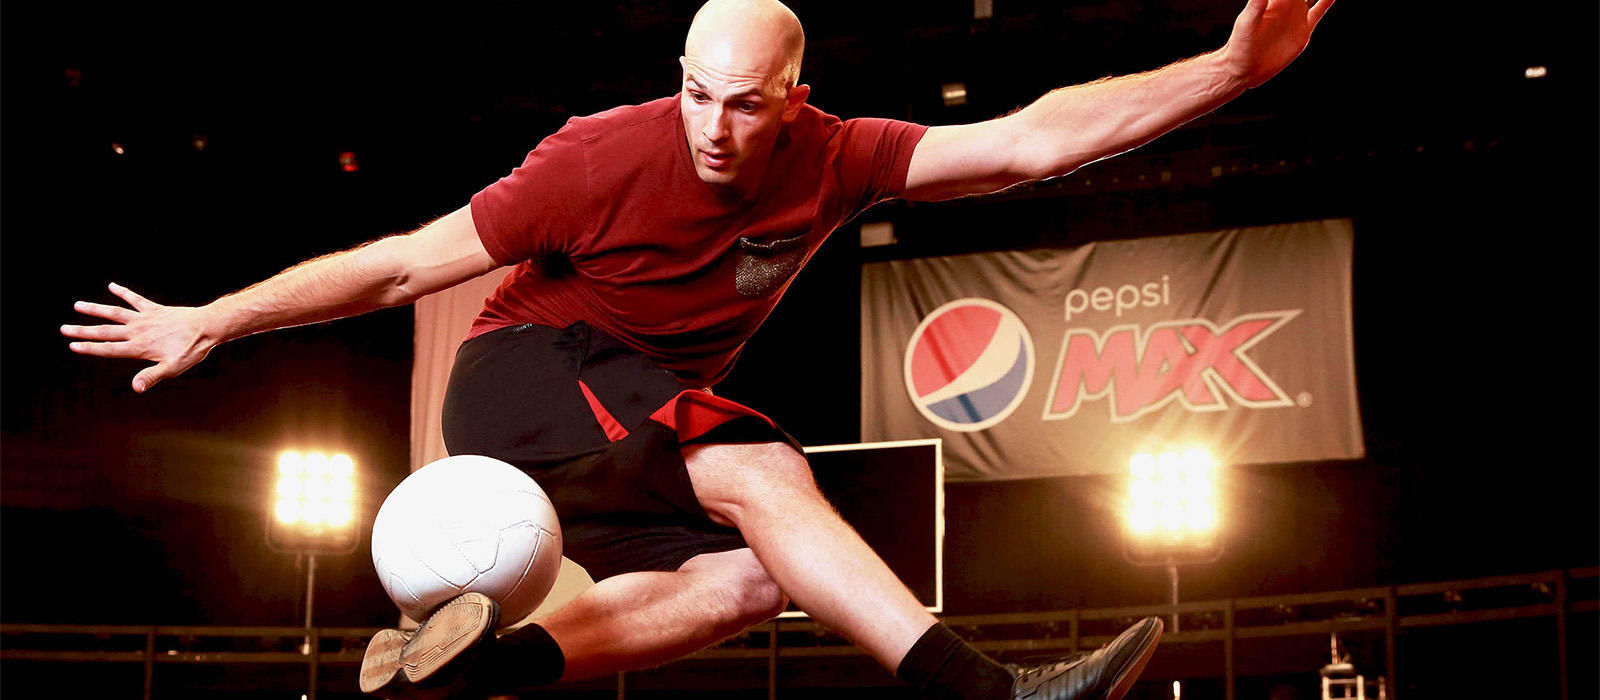 EDITORIAL USE ONLY Daniel Cutting, Professional Football Freestyler and FIVE-TIME Guinness World Record Holder, performs at the launch of the Pepsi MAX Volley Arena in Essex. PRESS ASSOCIATION Photo. Picture date: Thursday April 21, 2016. Photo credit should read: Matt Alexander/PA Wire